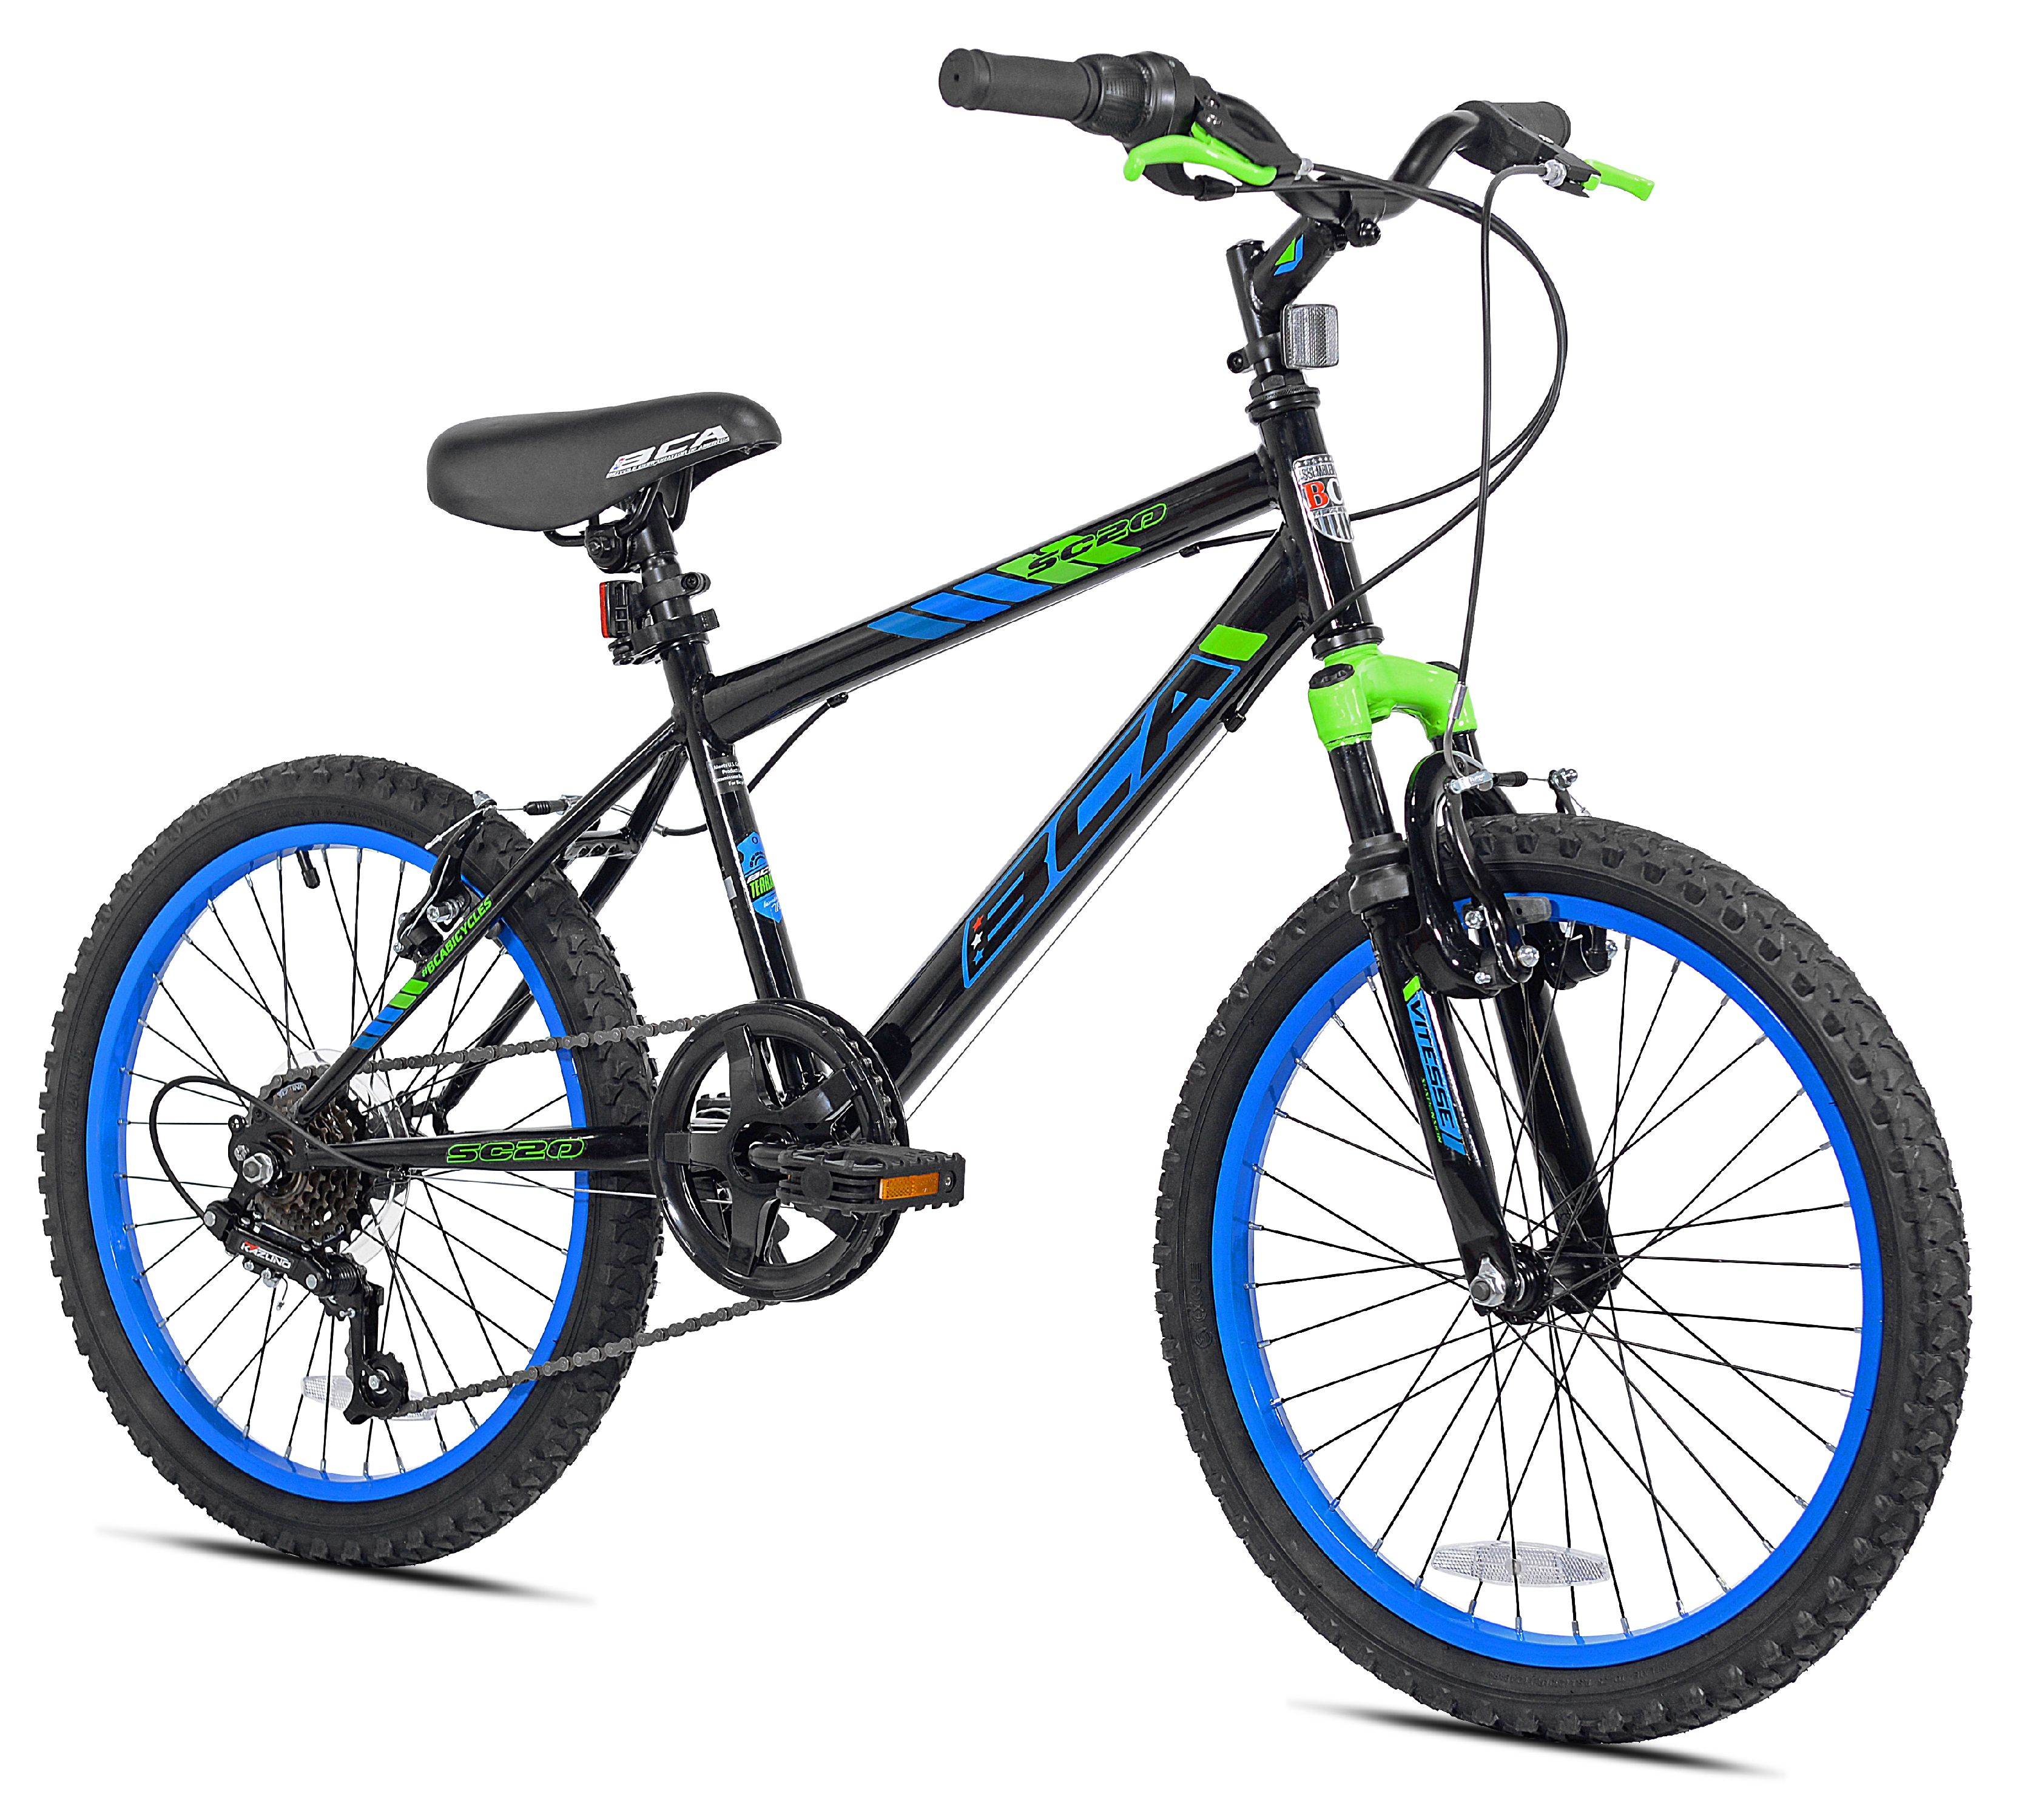 "BCA 20"" Boys', SC20 BMX Bicycle, Black/Blue, For Ages 8-12"